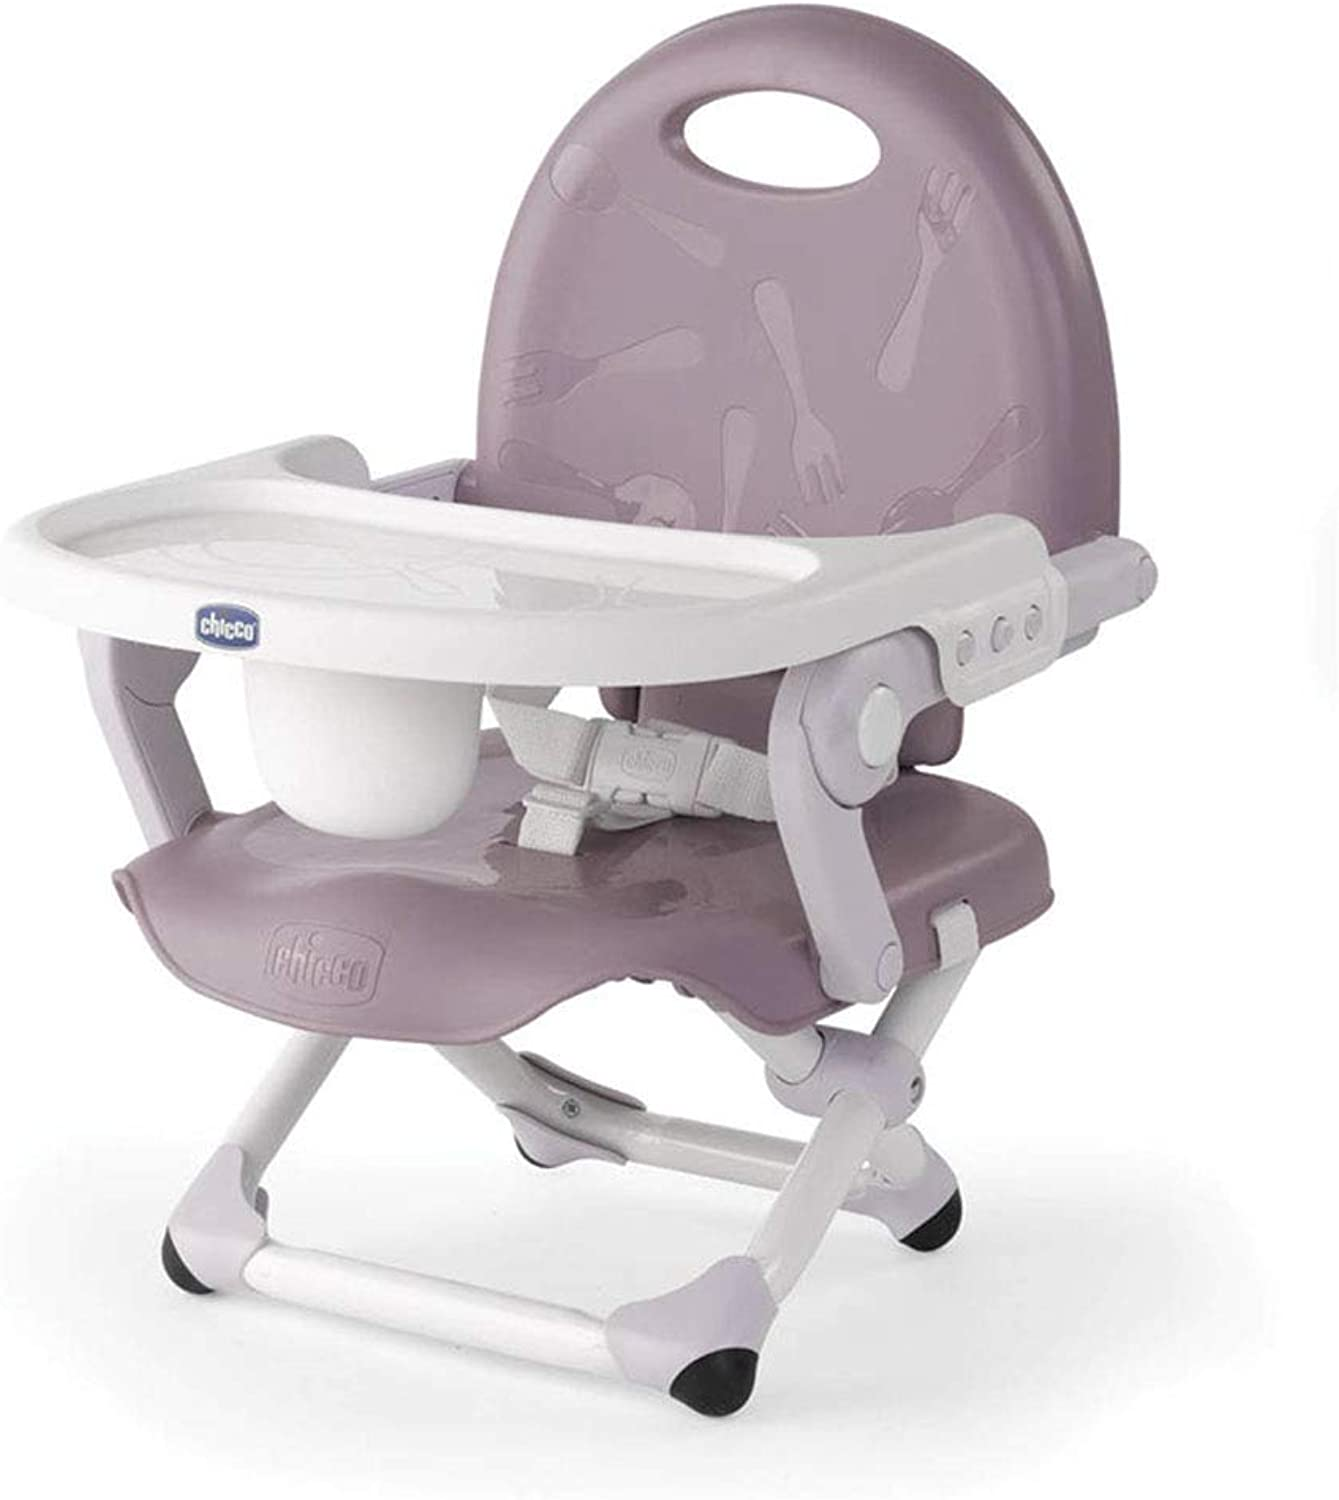 High Chair Baby Dining Chair Multi-Function seat Learning Chair Portable Folding (color   Purple, Size   32  38  49cm)